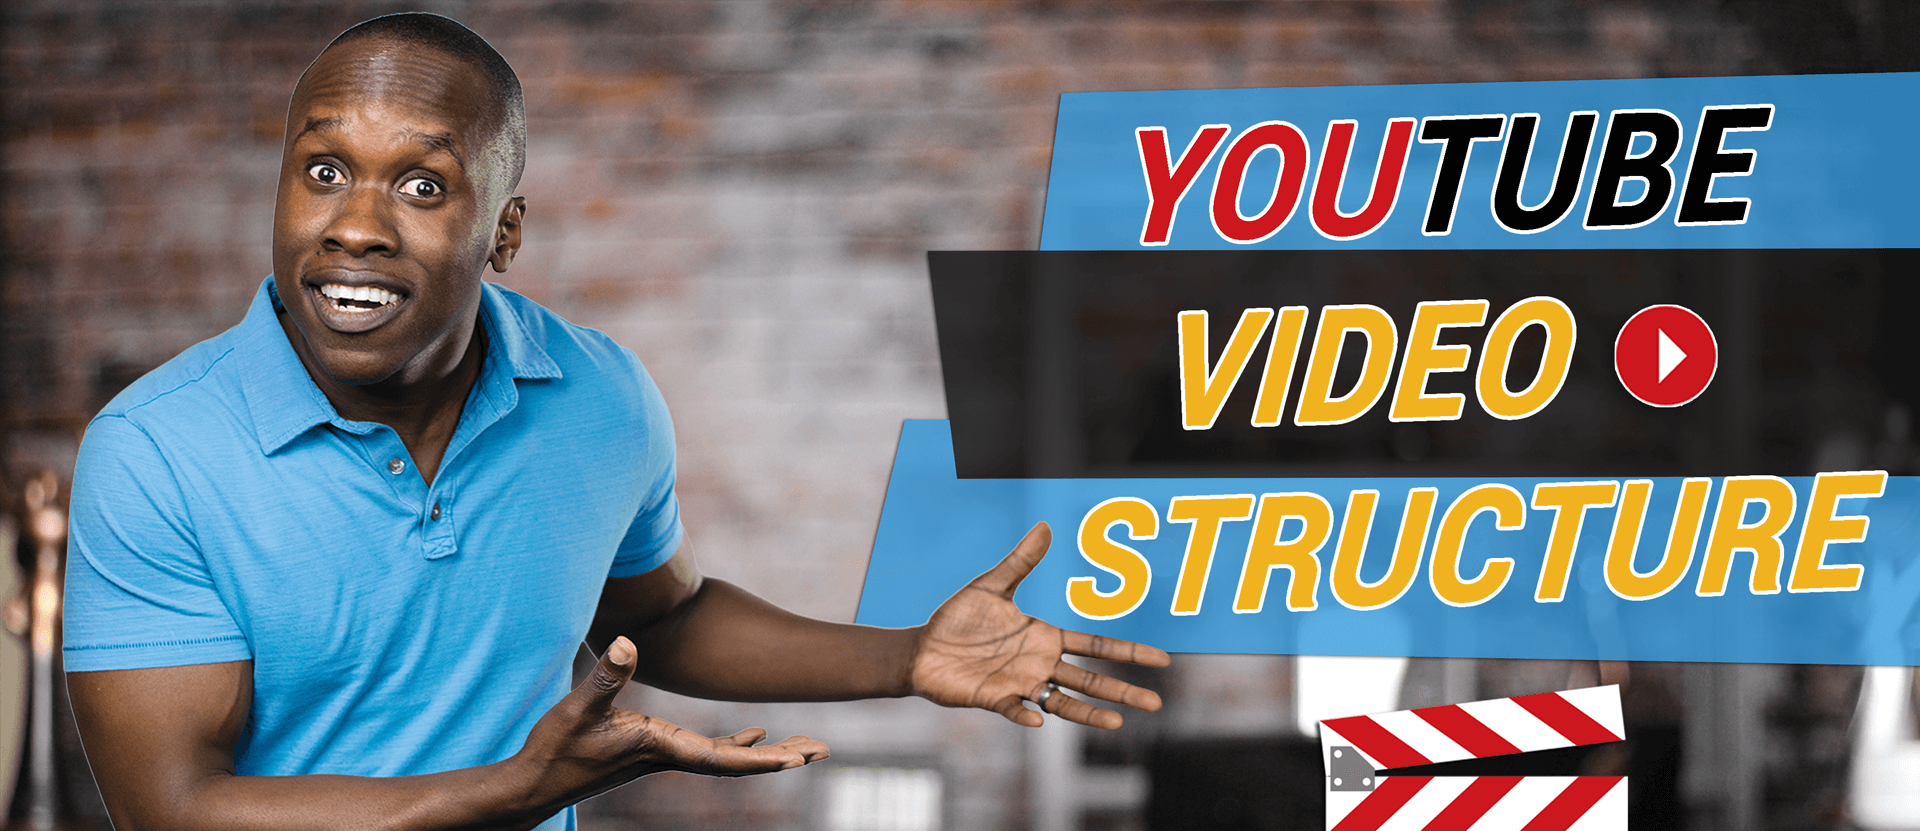 YouTube Video Structure – What works!